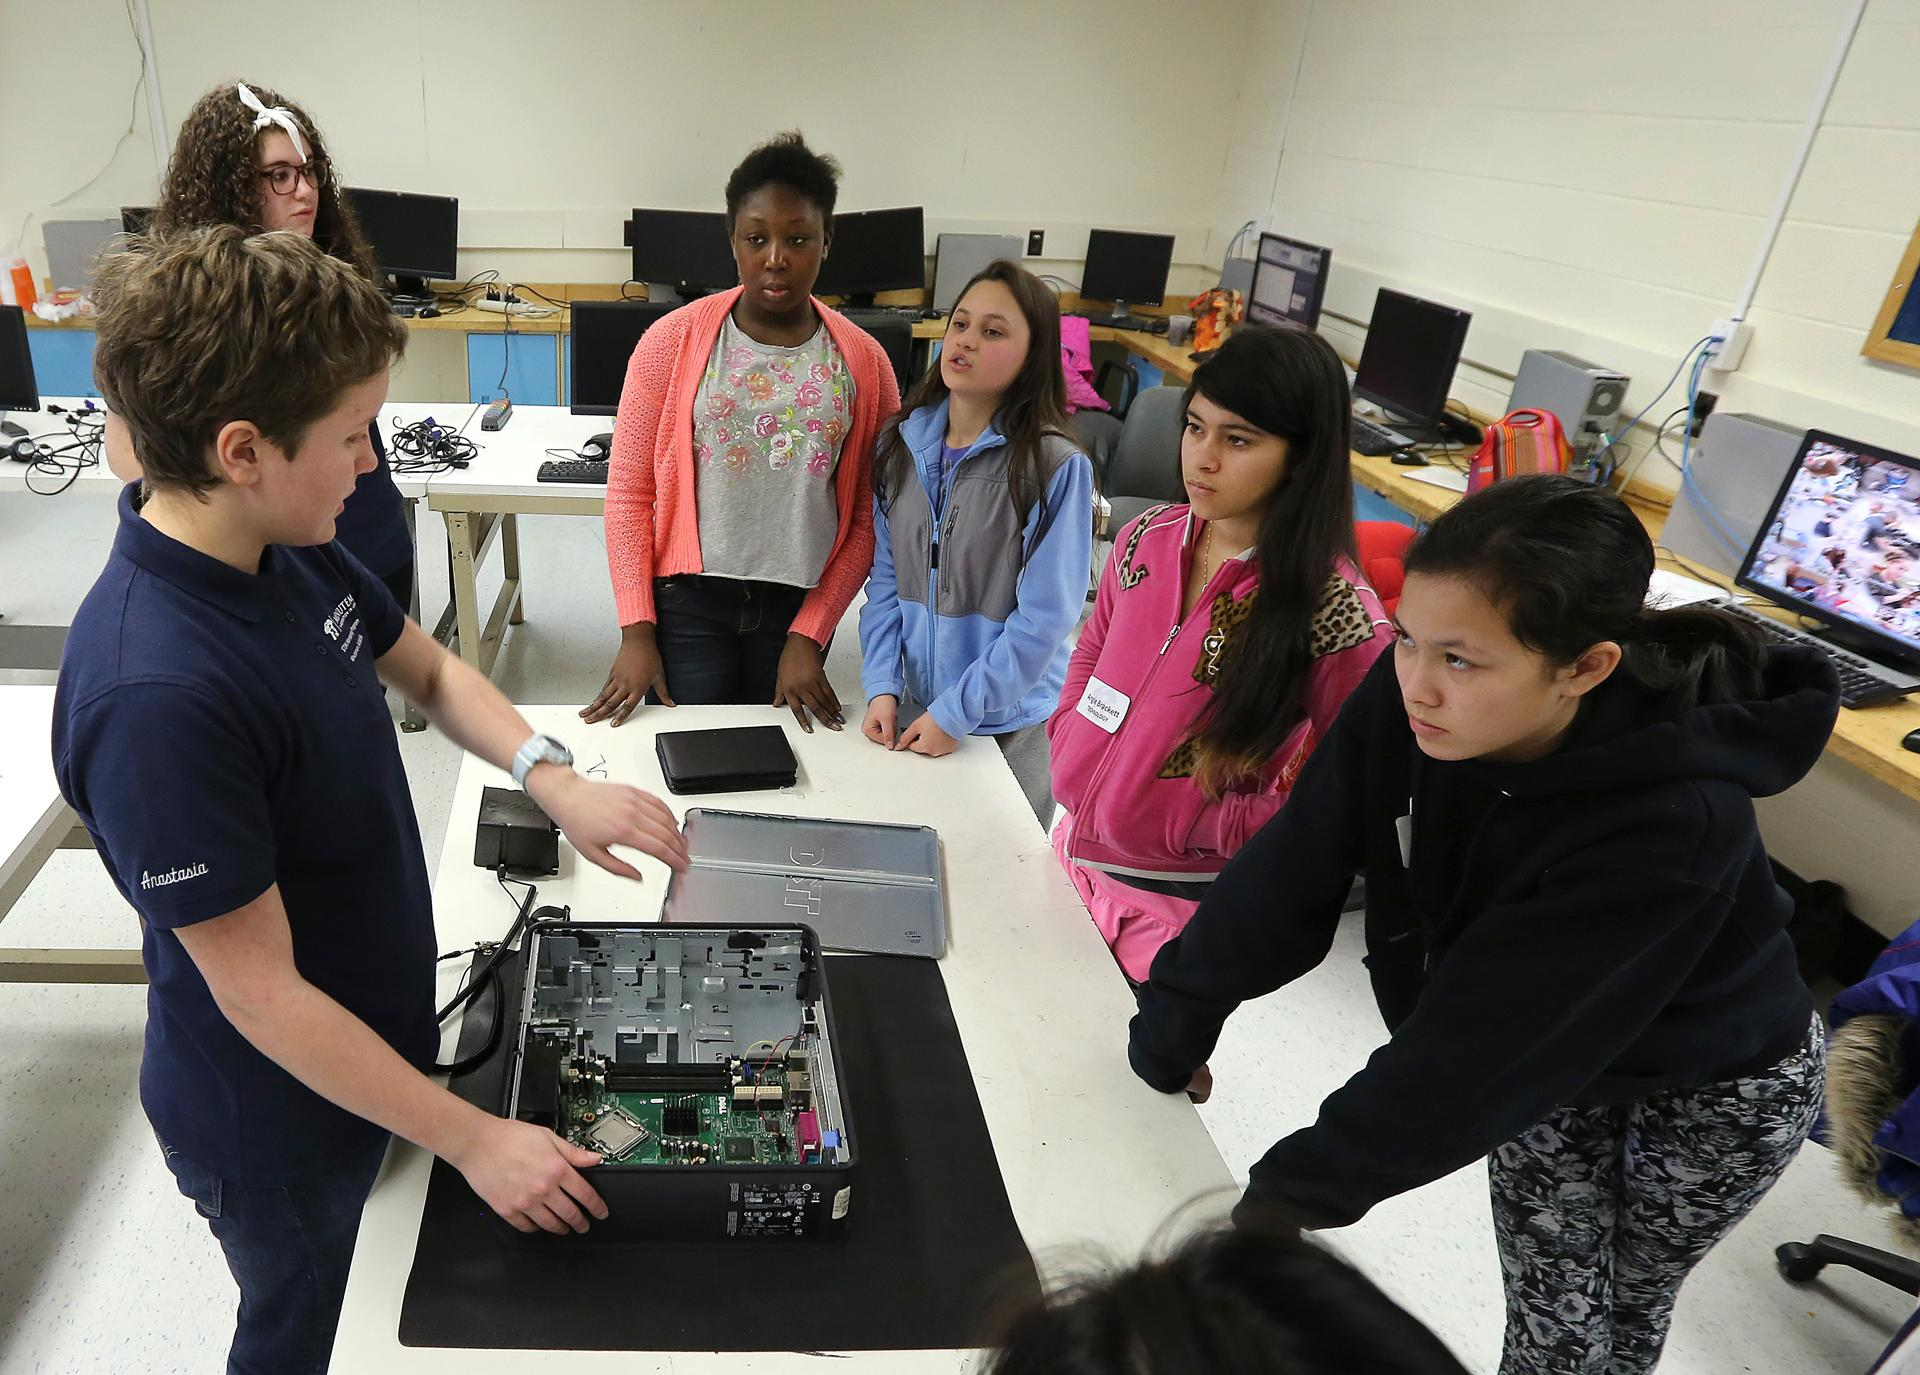 Anastasia Monich spoke about computers at the vacation week camp held in Minuteman High School.